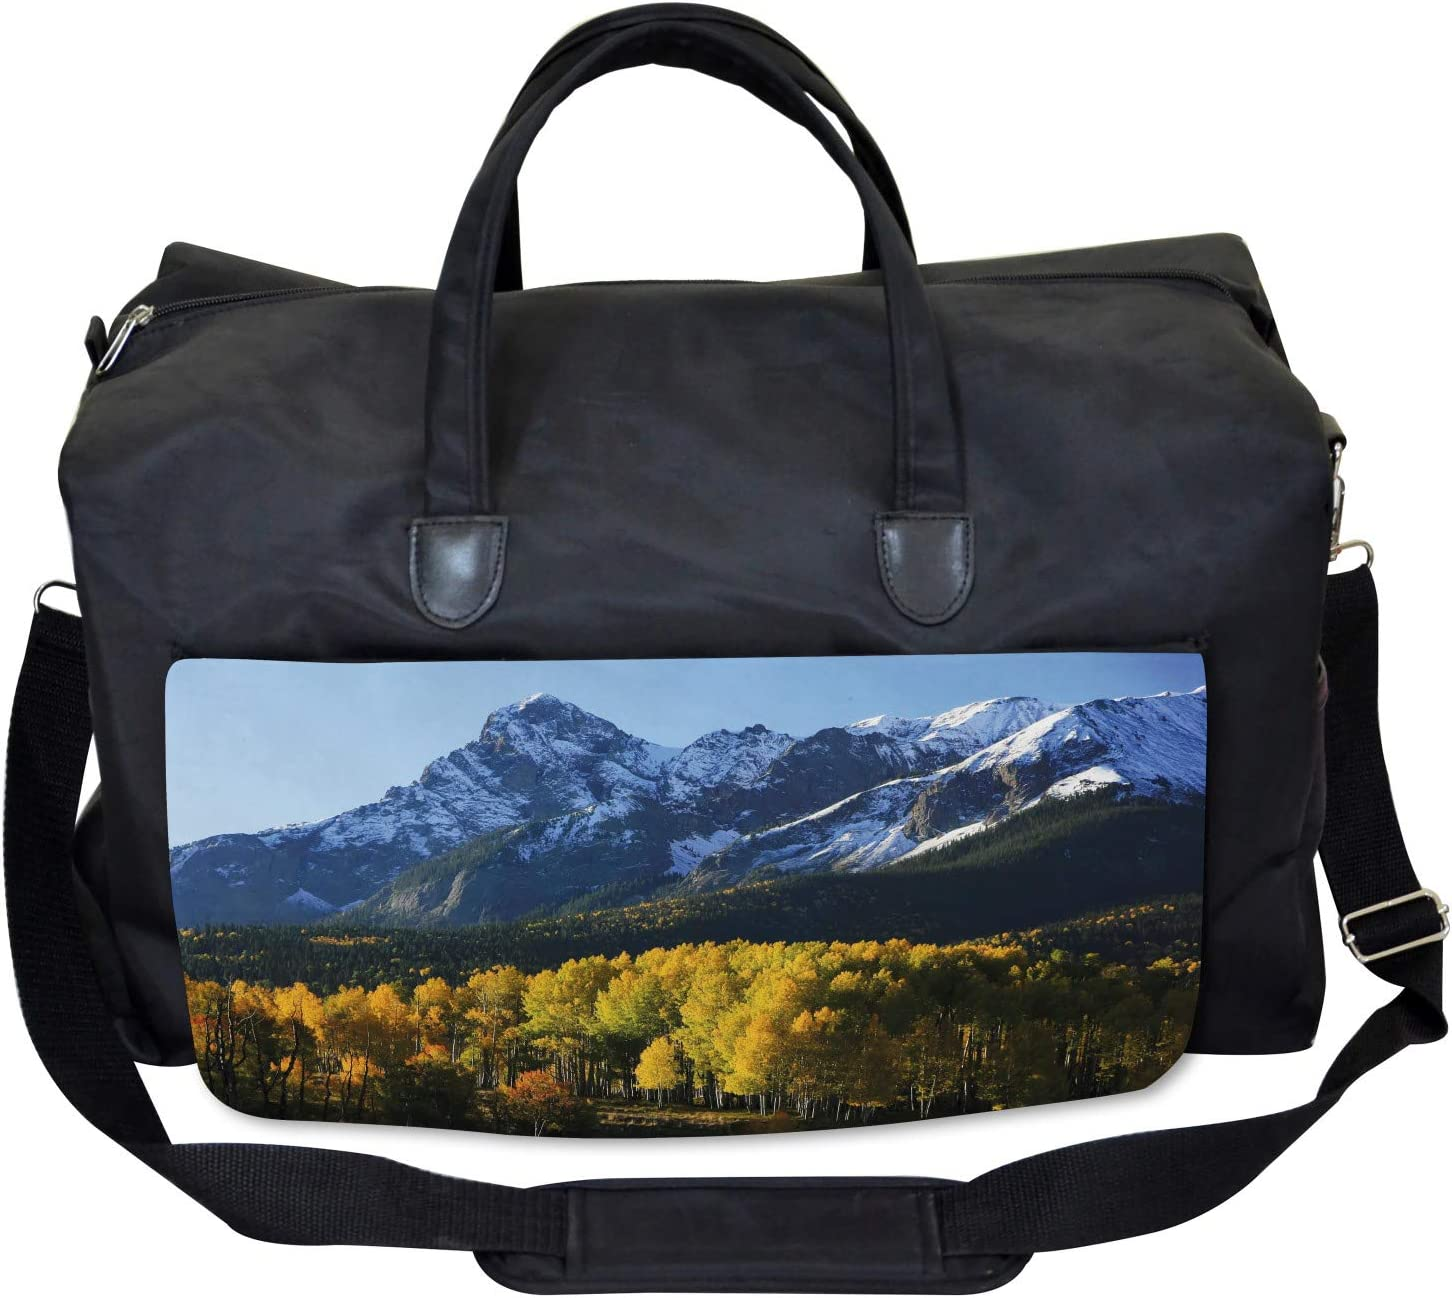 Large Weekender Carry-on Ambesonne Landscape Gym Bag Colorado Village